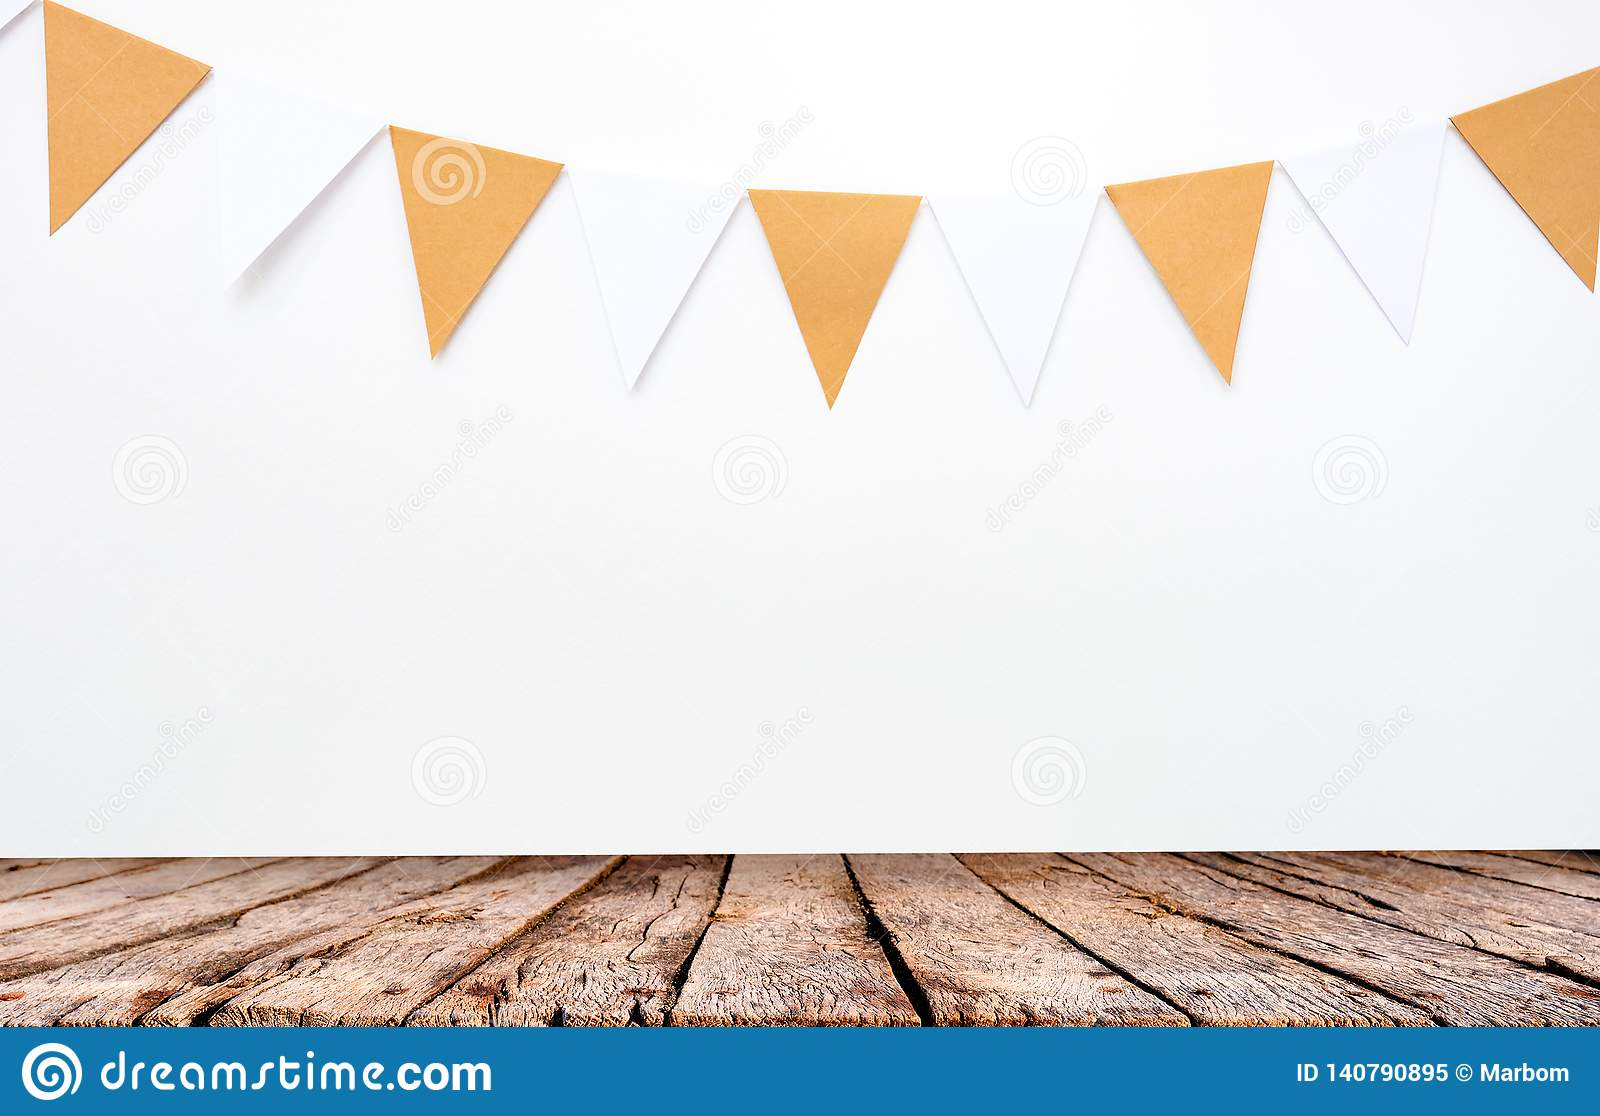 Wooden table and hanging paper flags on white wall background, decor items for party, festival, celebrate event